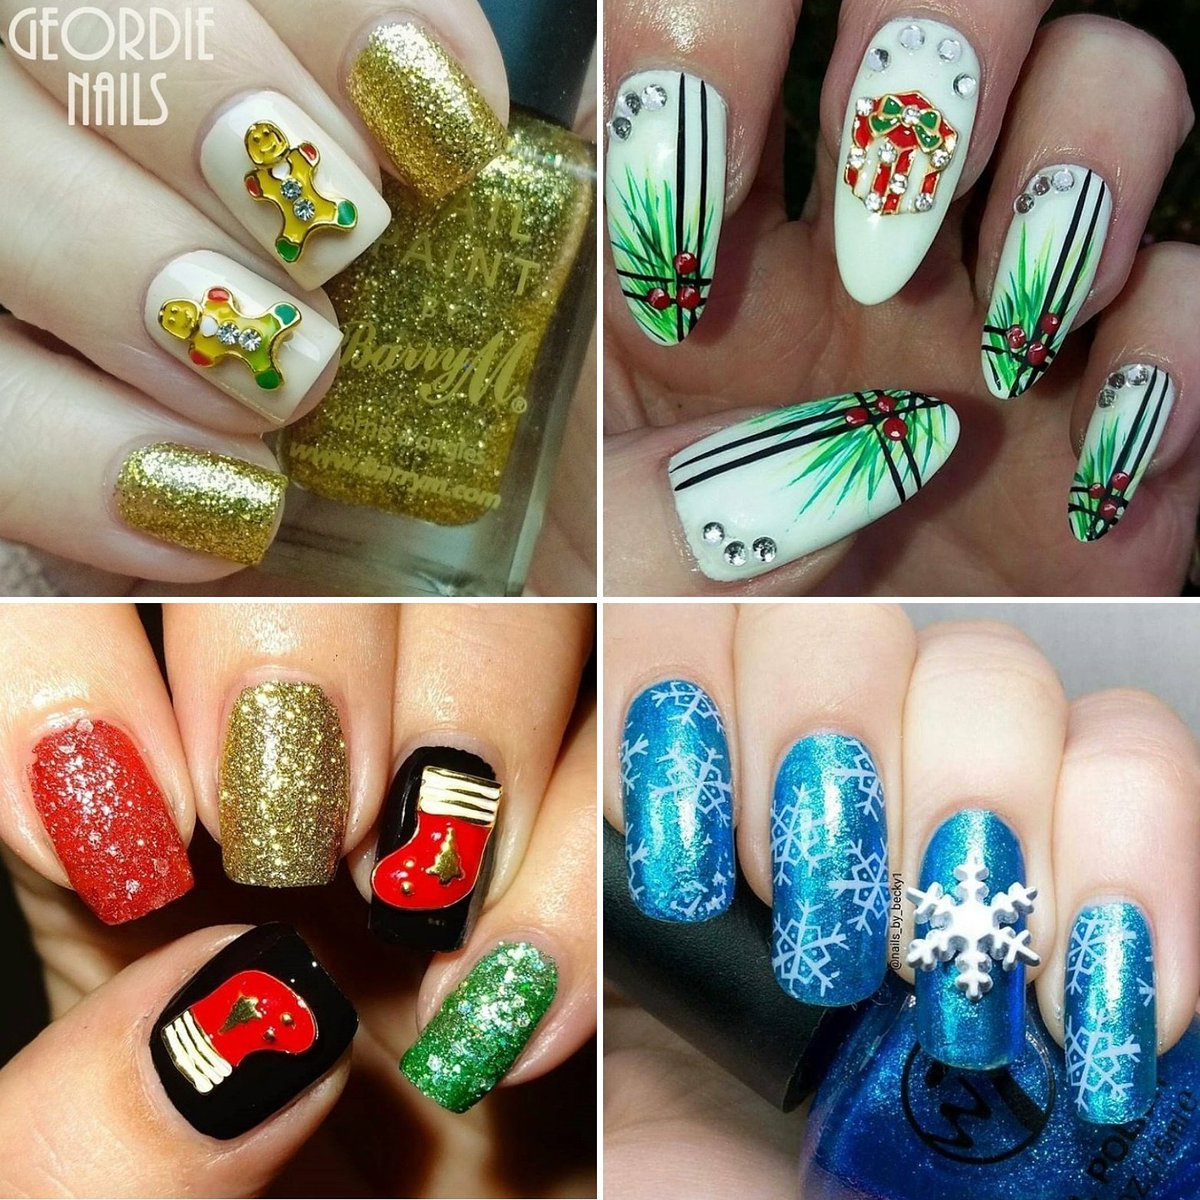 Charlies Nail Art Supplies On Twitter Order Your Christmas 3d